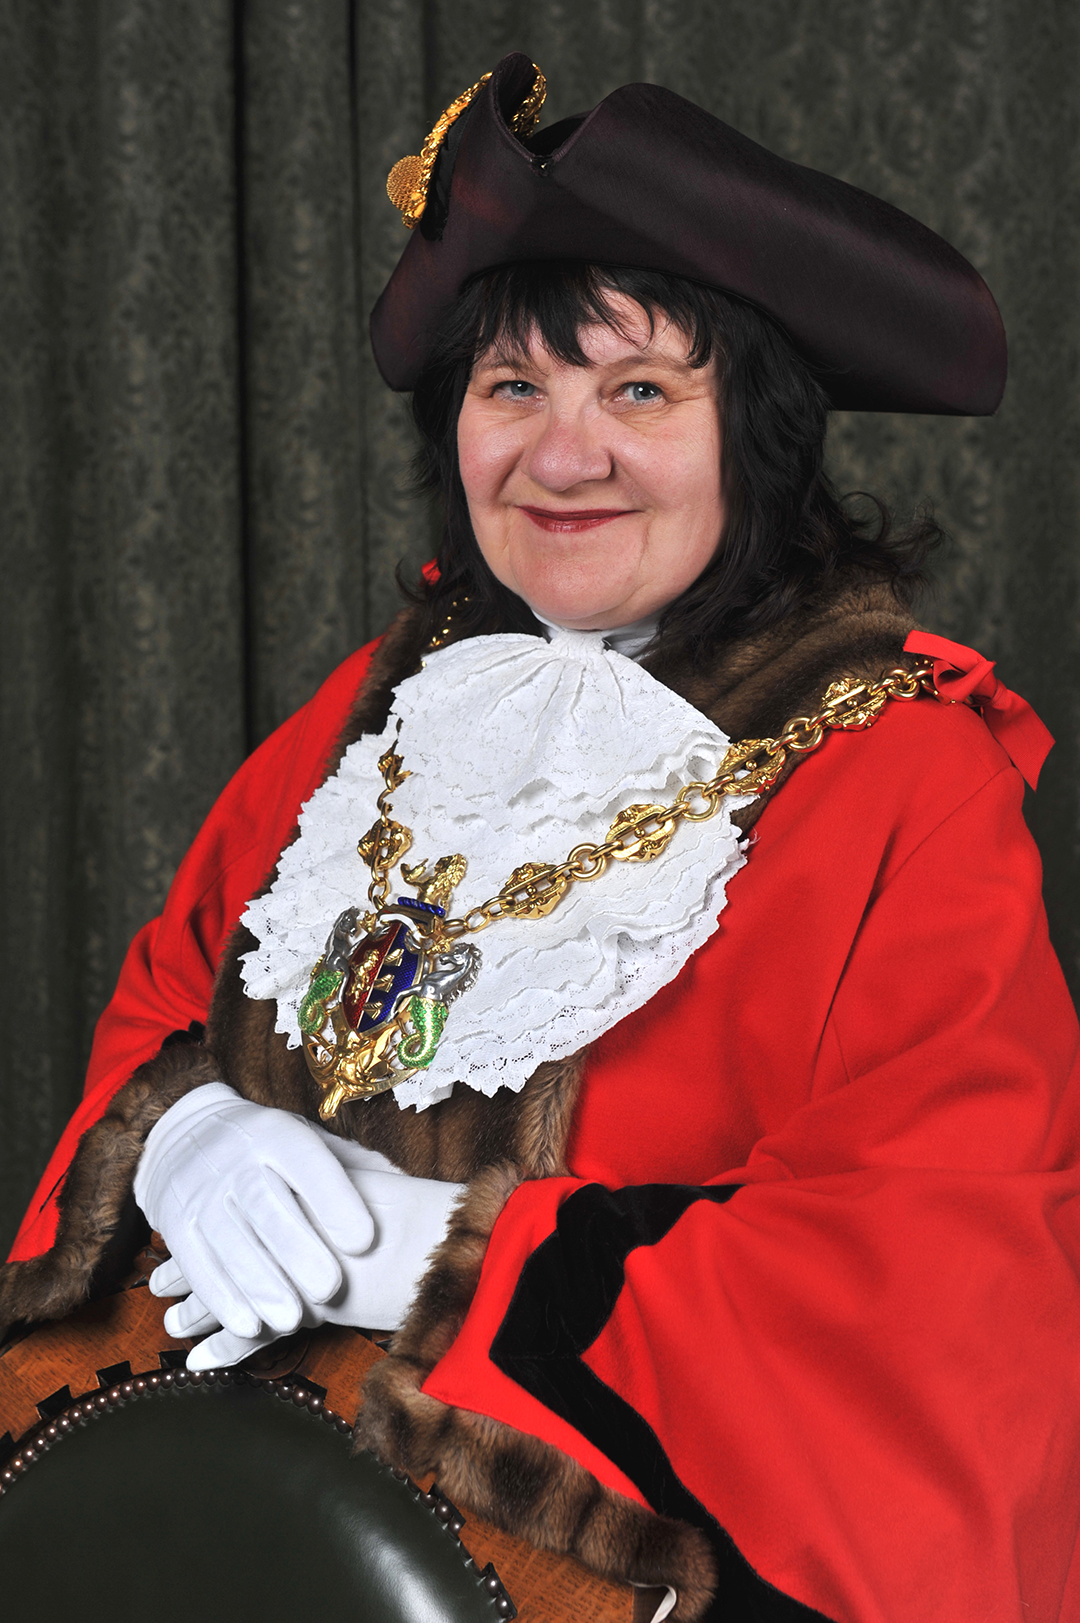 Mayor of Ipswich Cllr Elizabeth Hughes in mayoral robes and chain